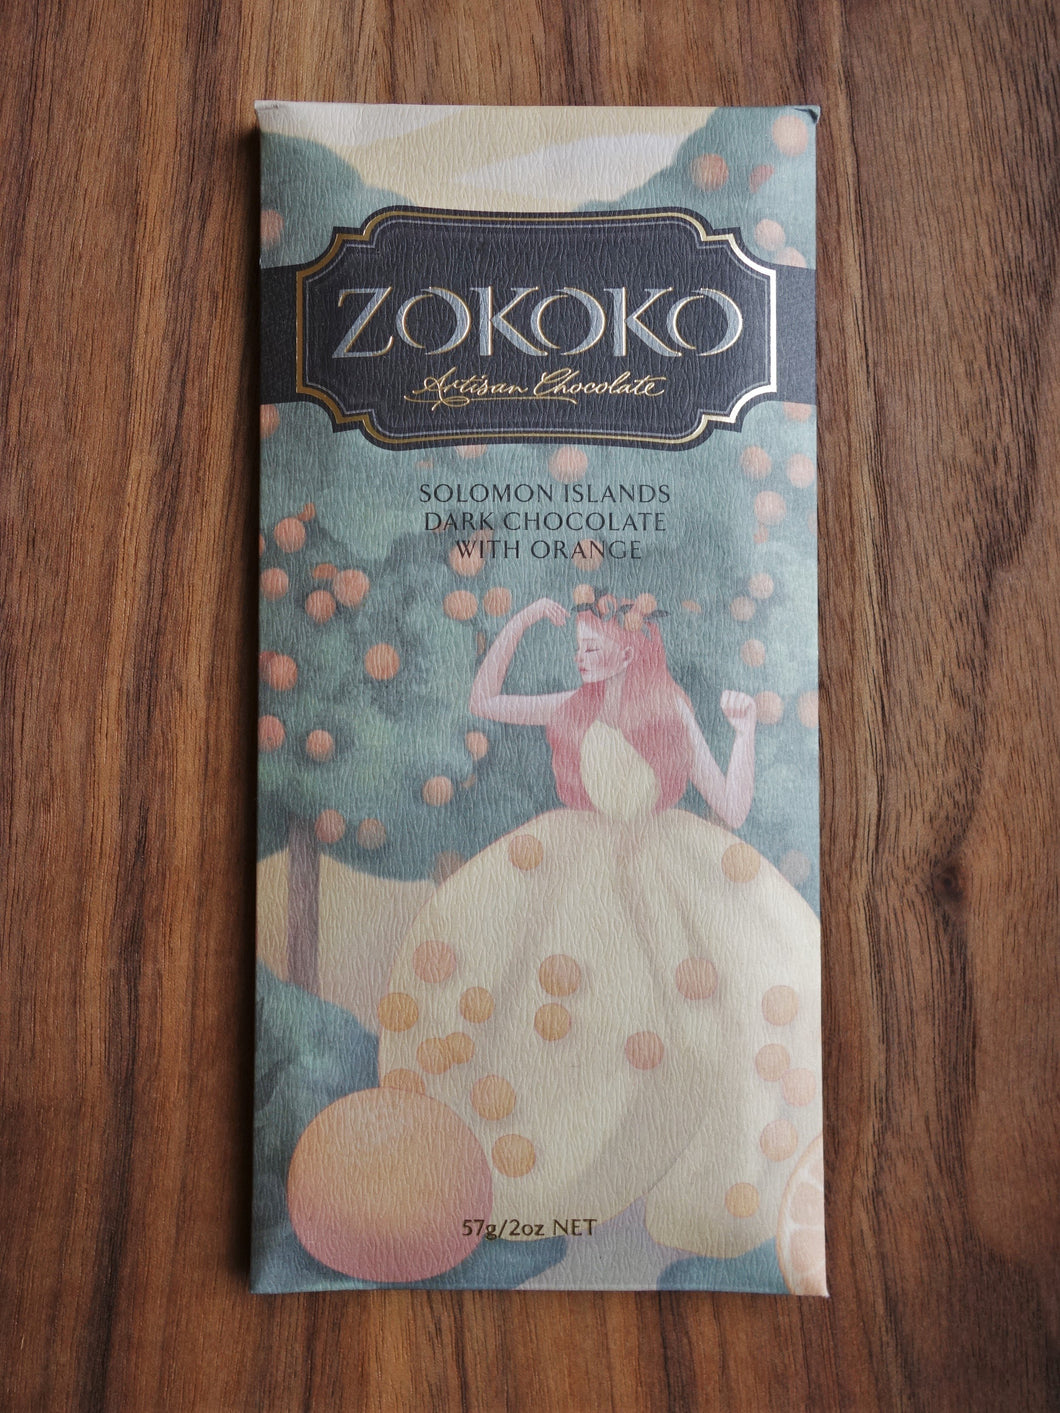 Zokoko Goddess Orange